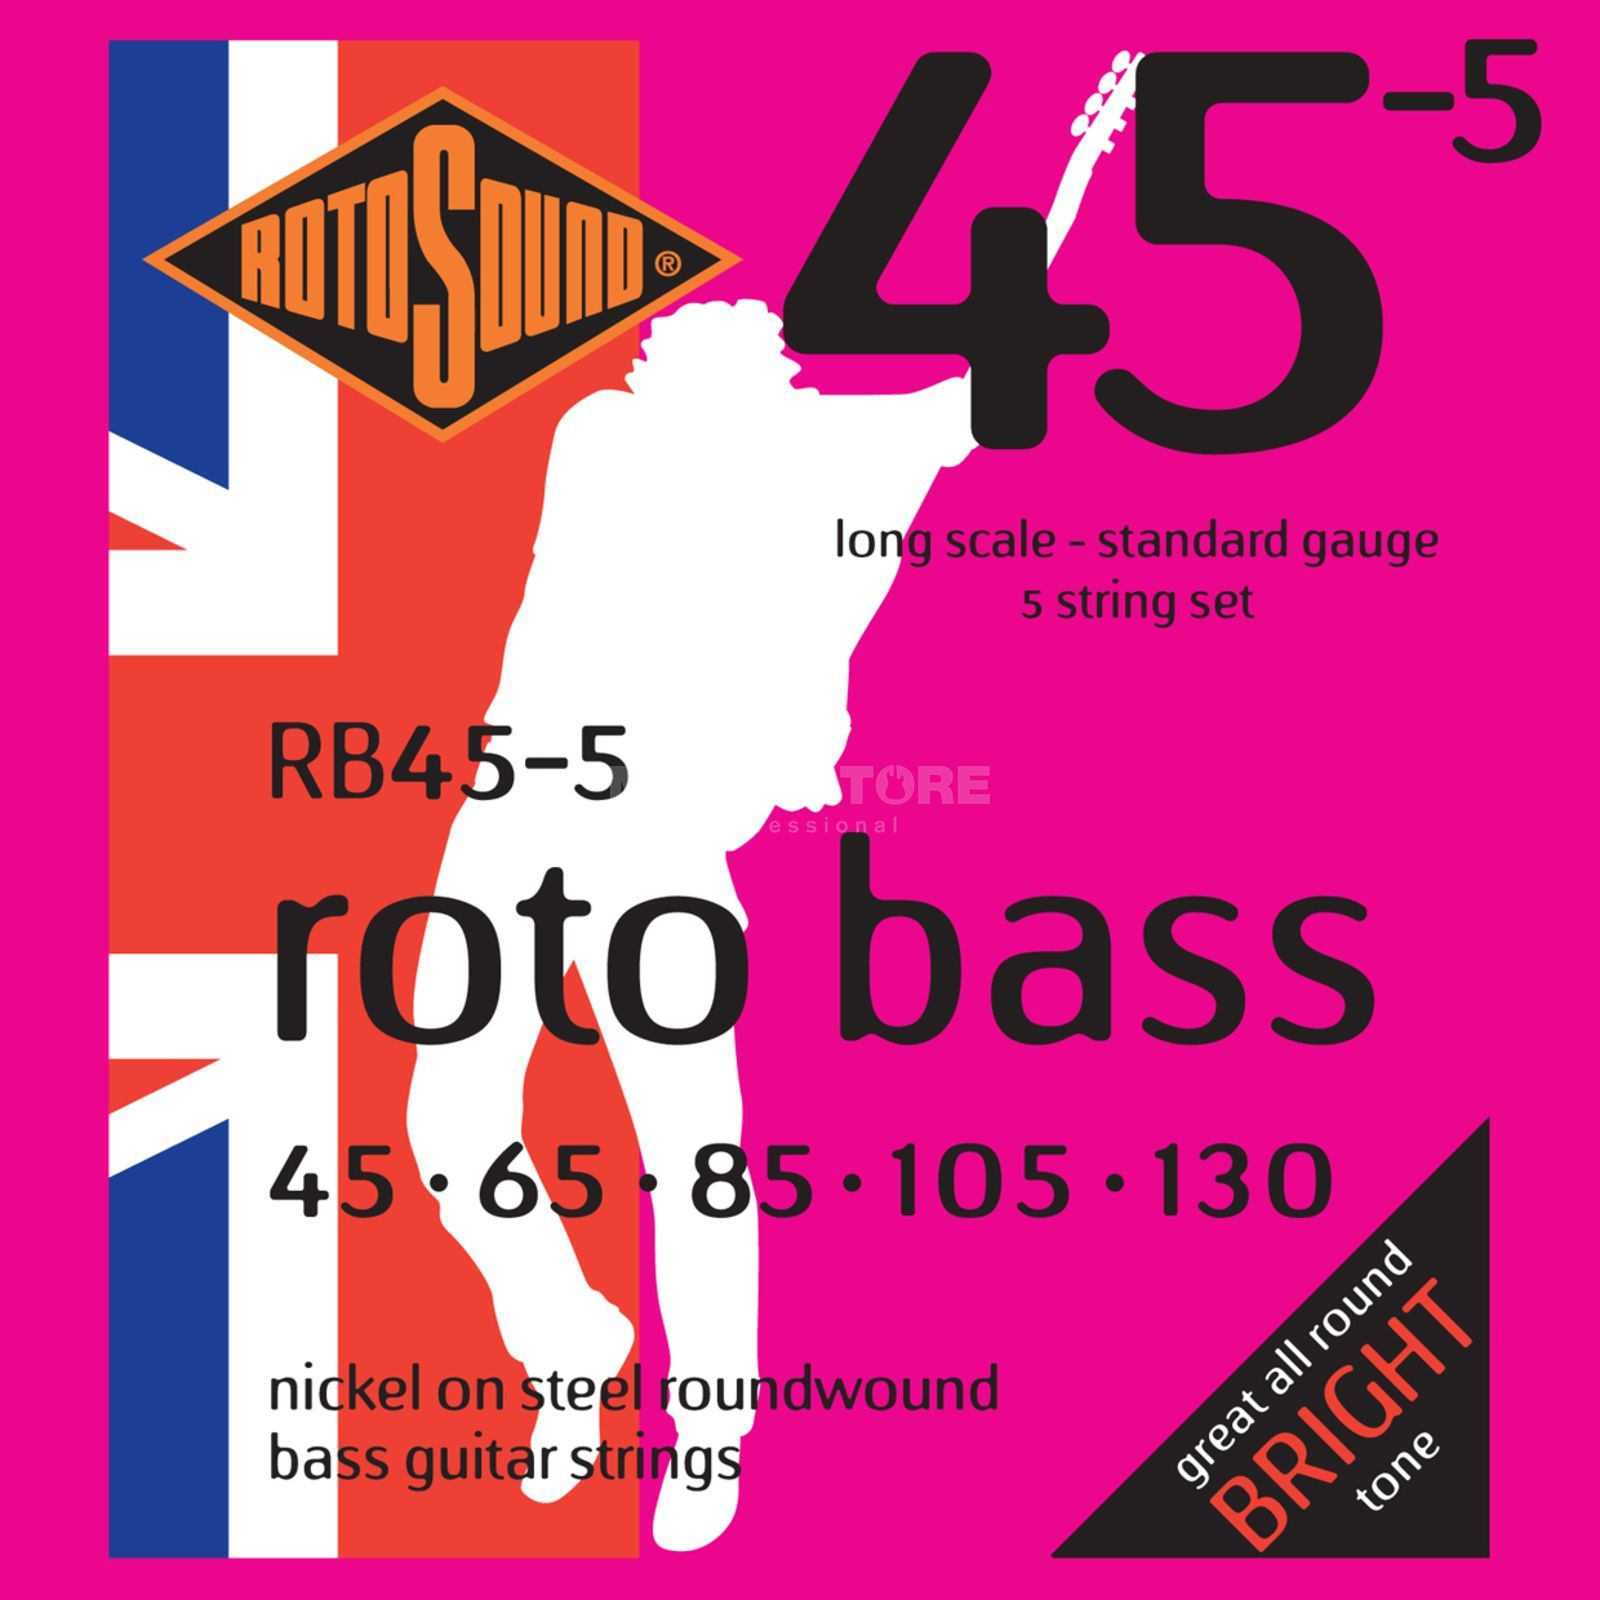 Rotosound Bass Strings RB455 5er 45-130 Nickel Wound Imagem do produto